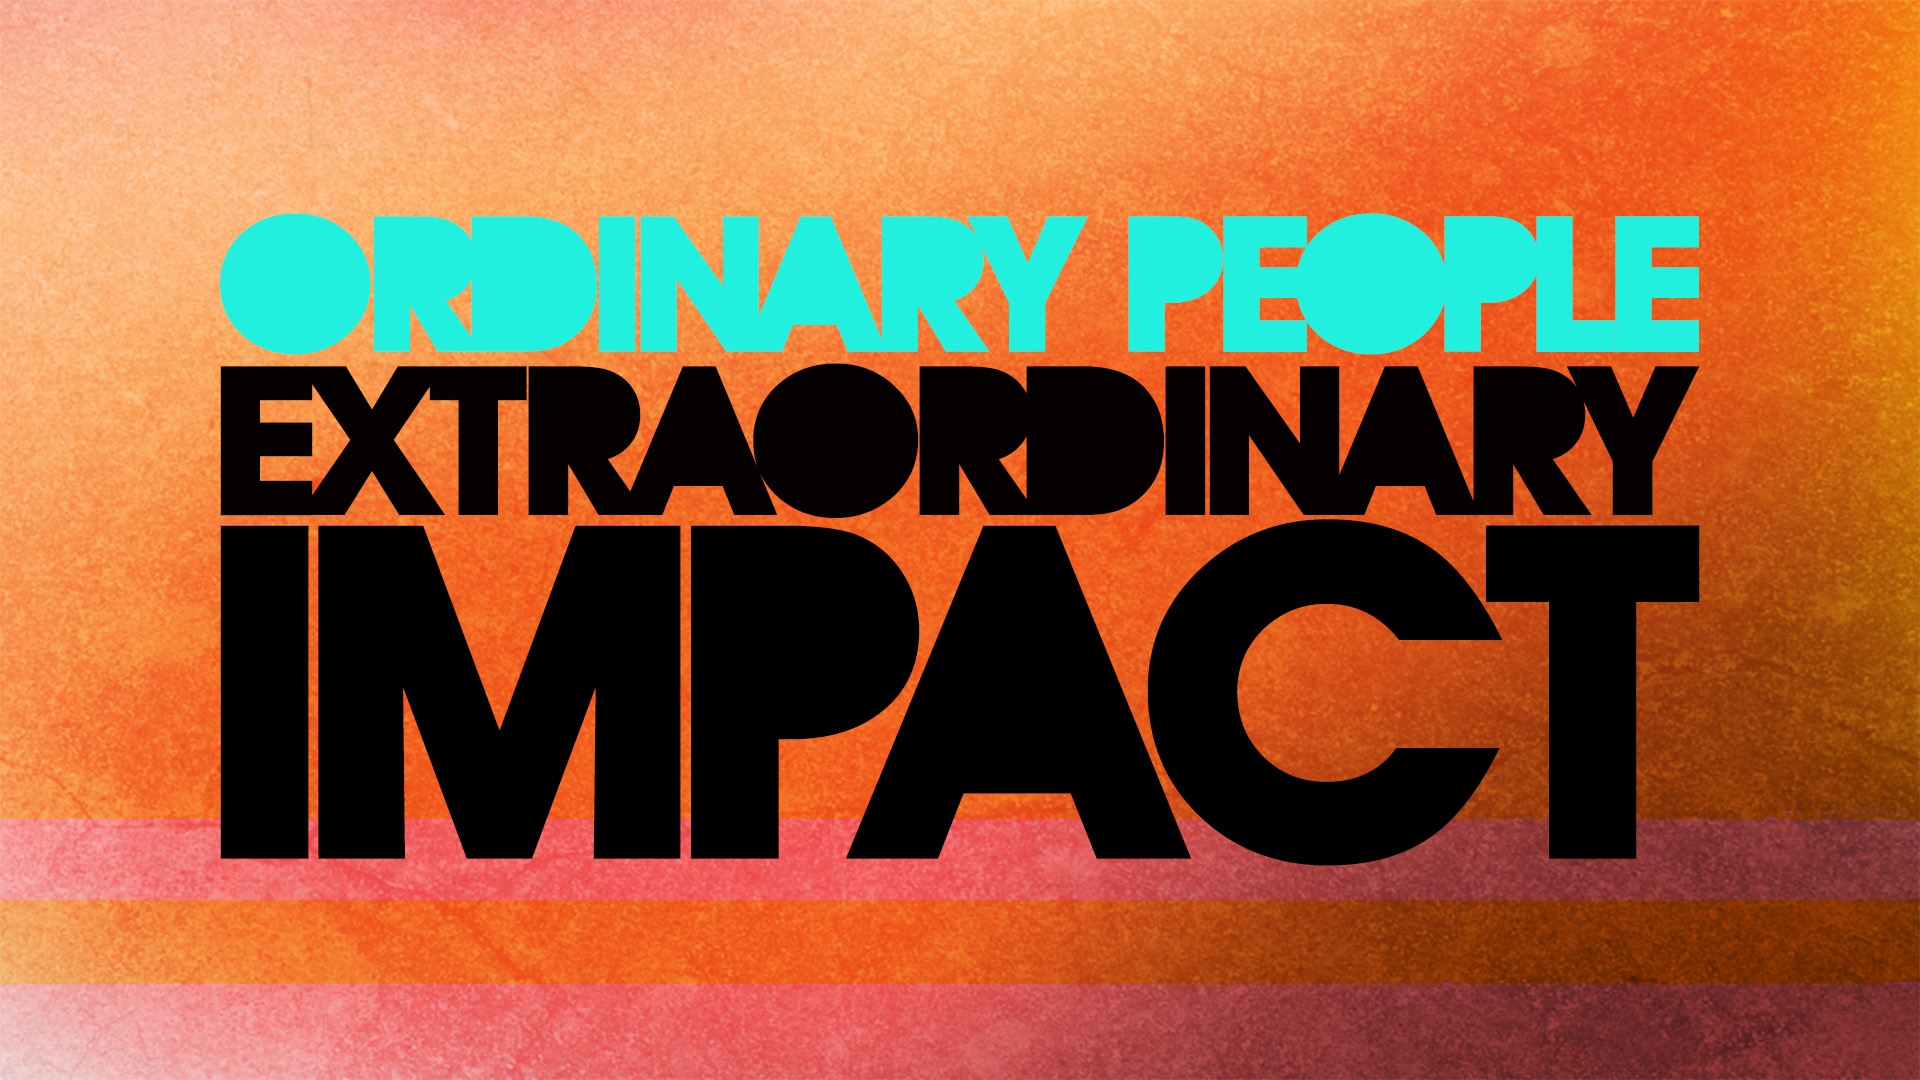 Ordinary People Extraordinary Impact